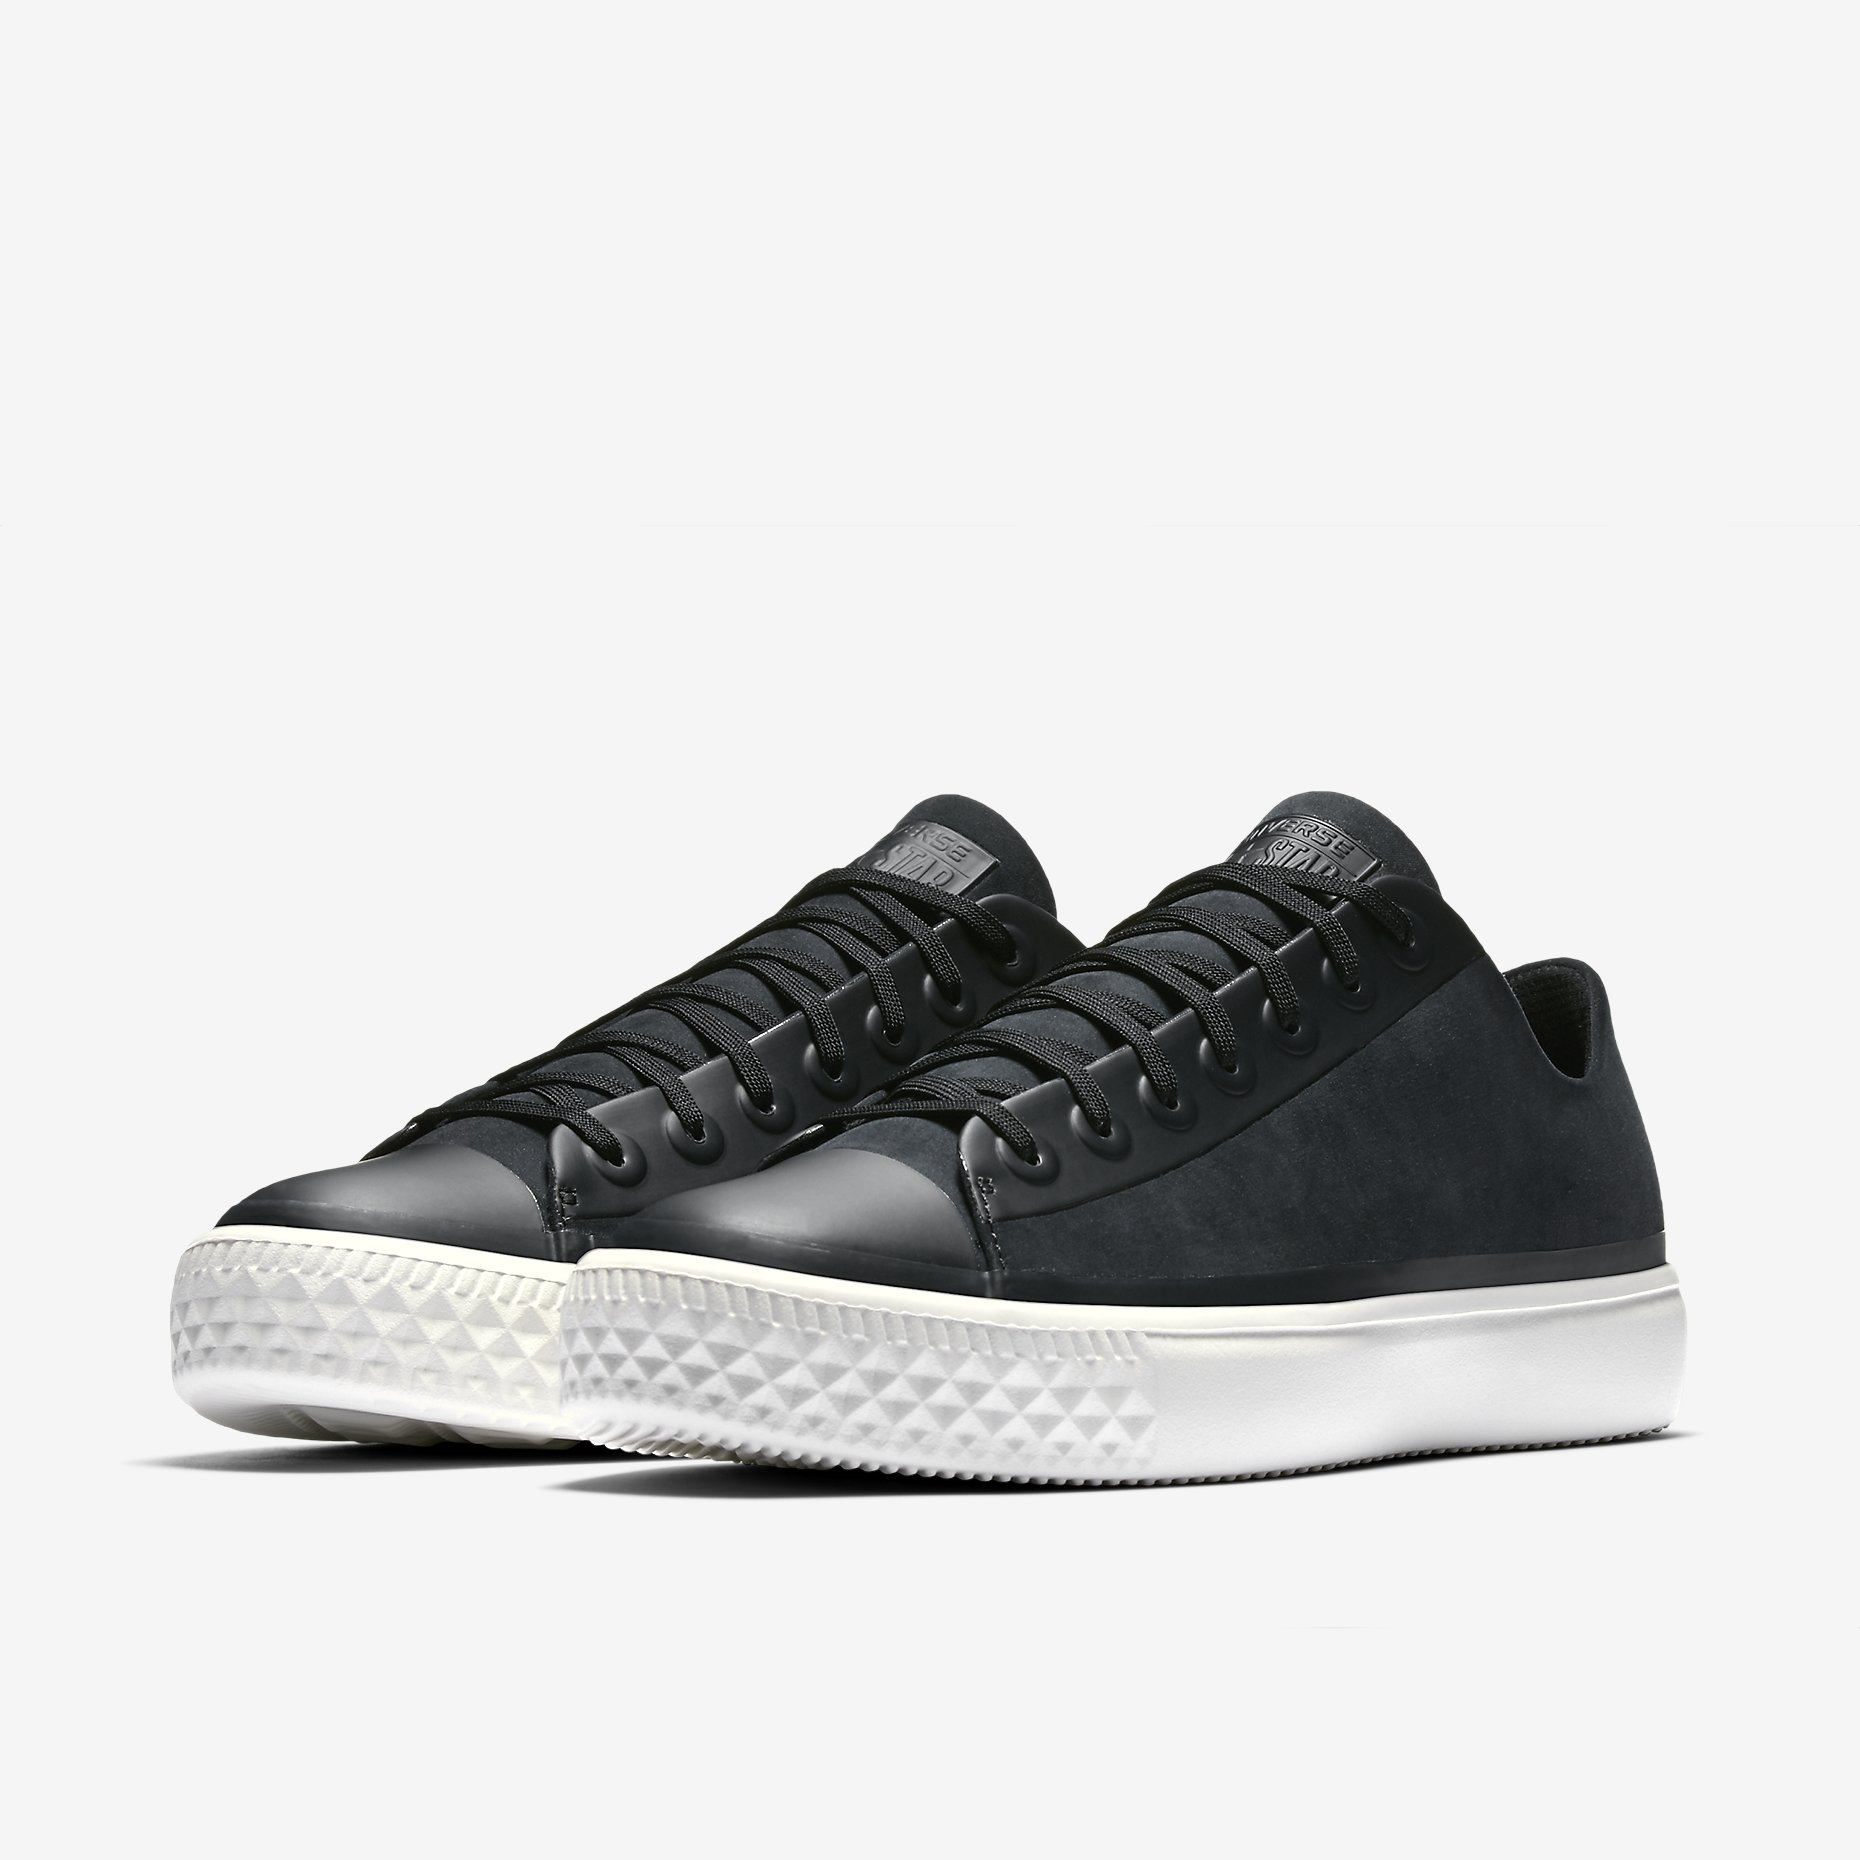 Enfermedad Subir y bajar morir  Very Goods | Converse Chuck Taylor All Star Modern Future Canvas Low Top  Unisex Shoe. Nike.com